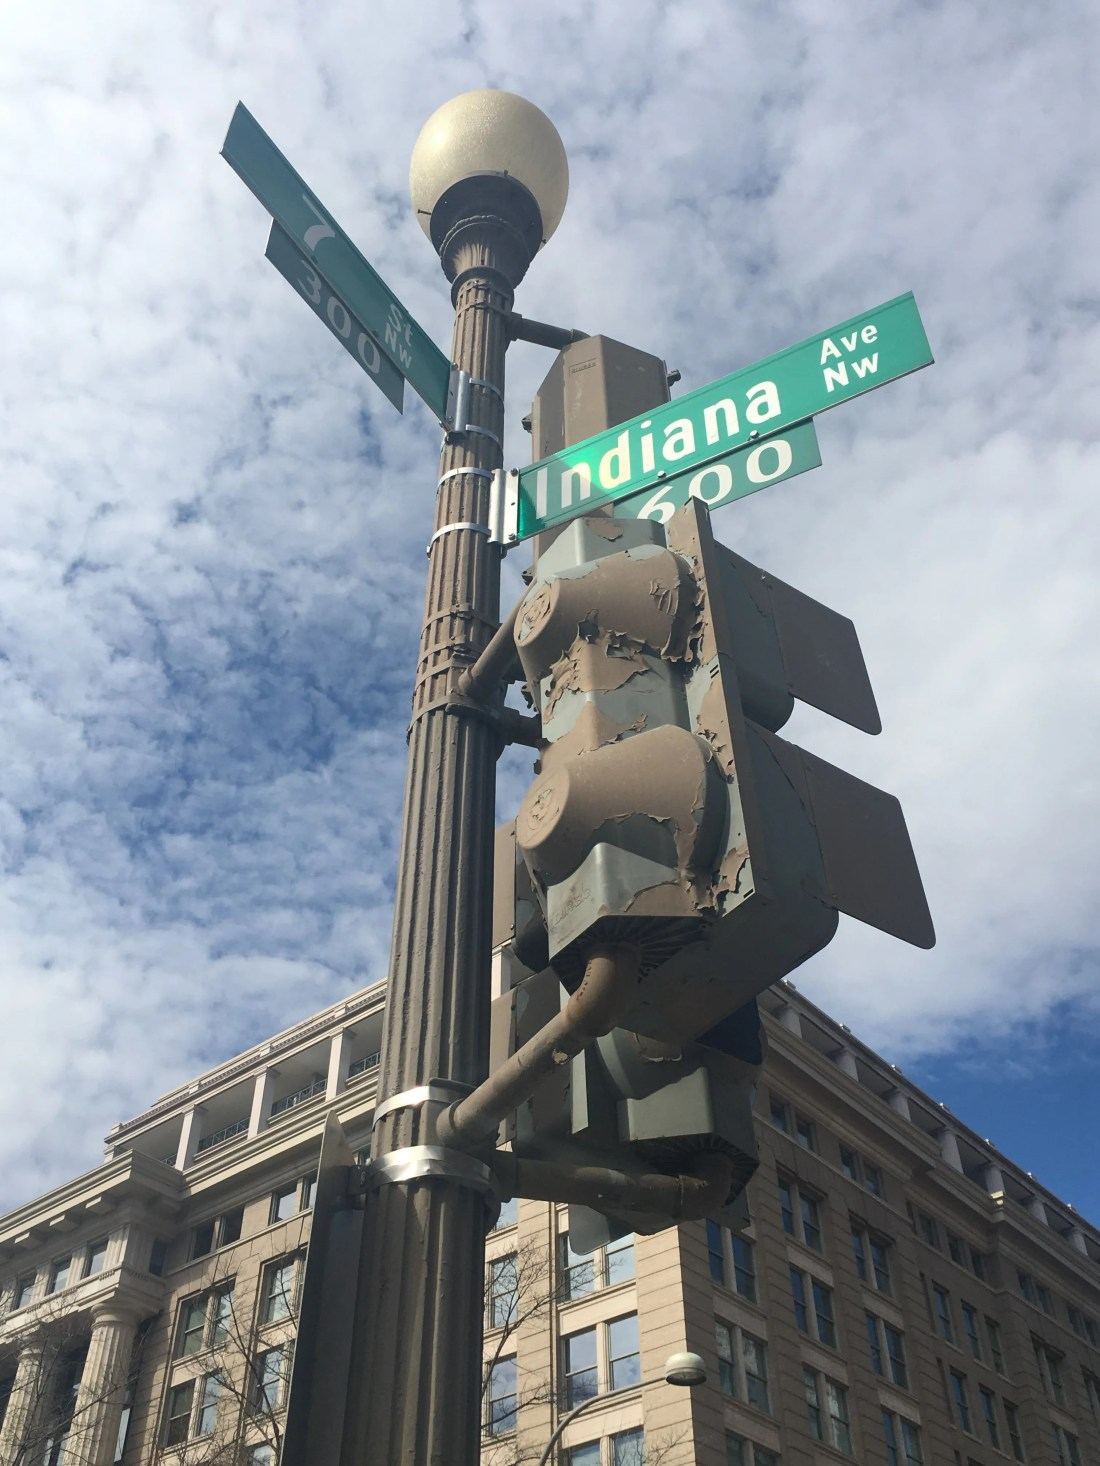 Indiana Avenue is one of the streets that borders Indiana Plaza in Washington, D.C.